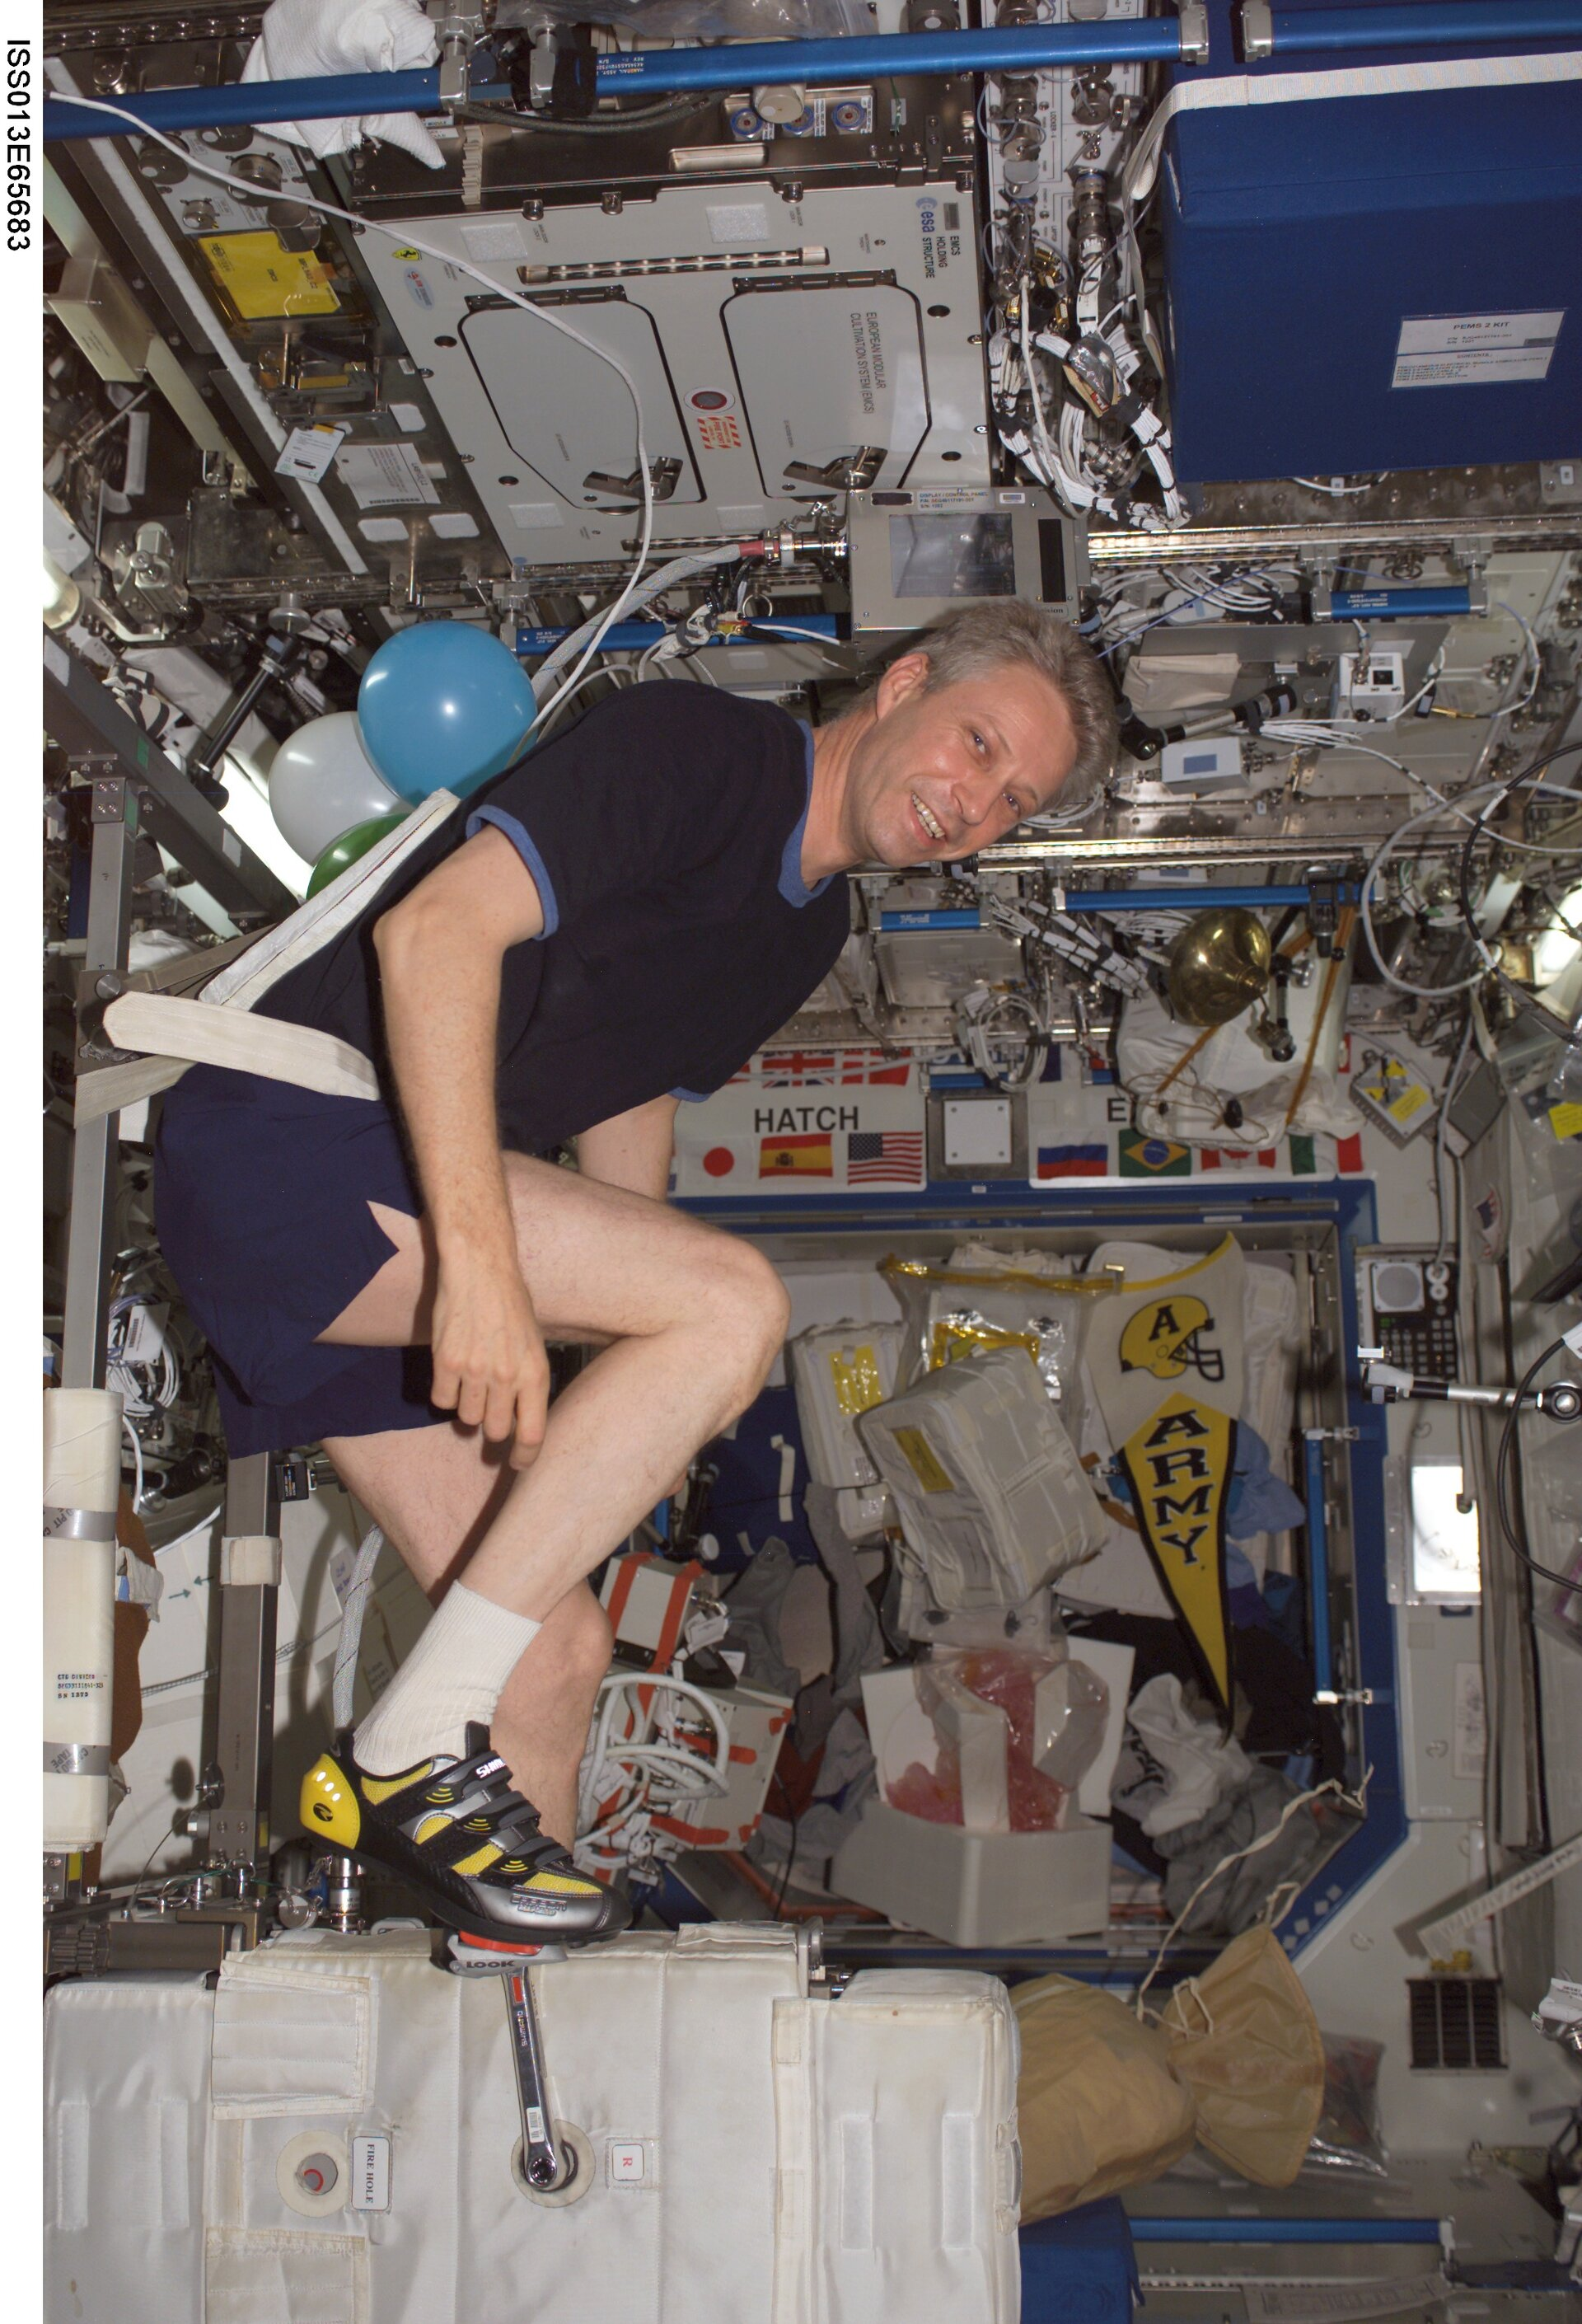 Exercising on board the ISS